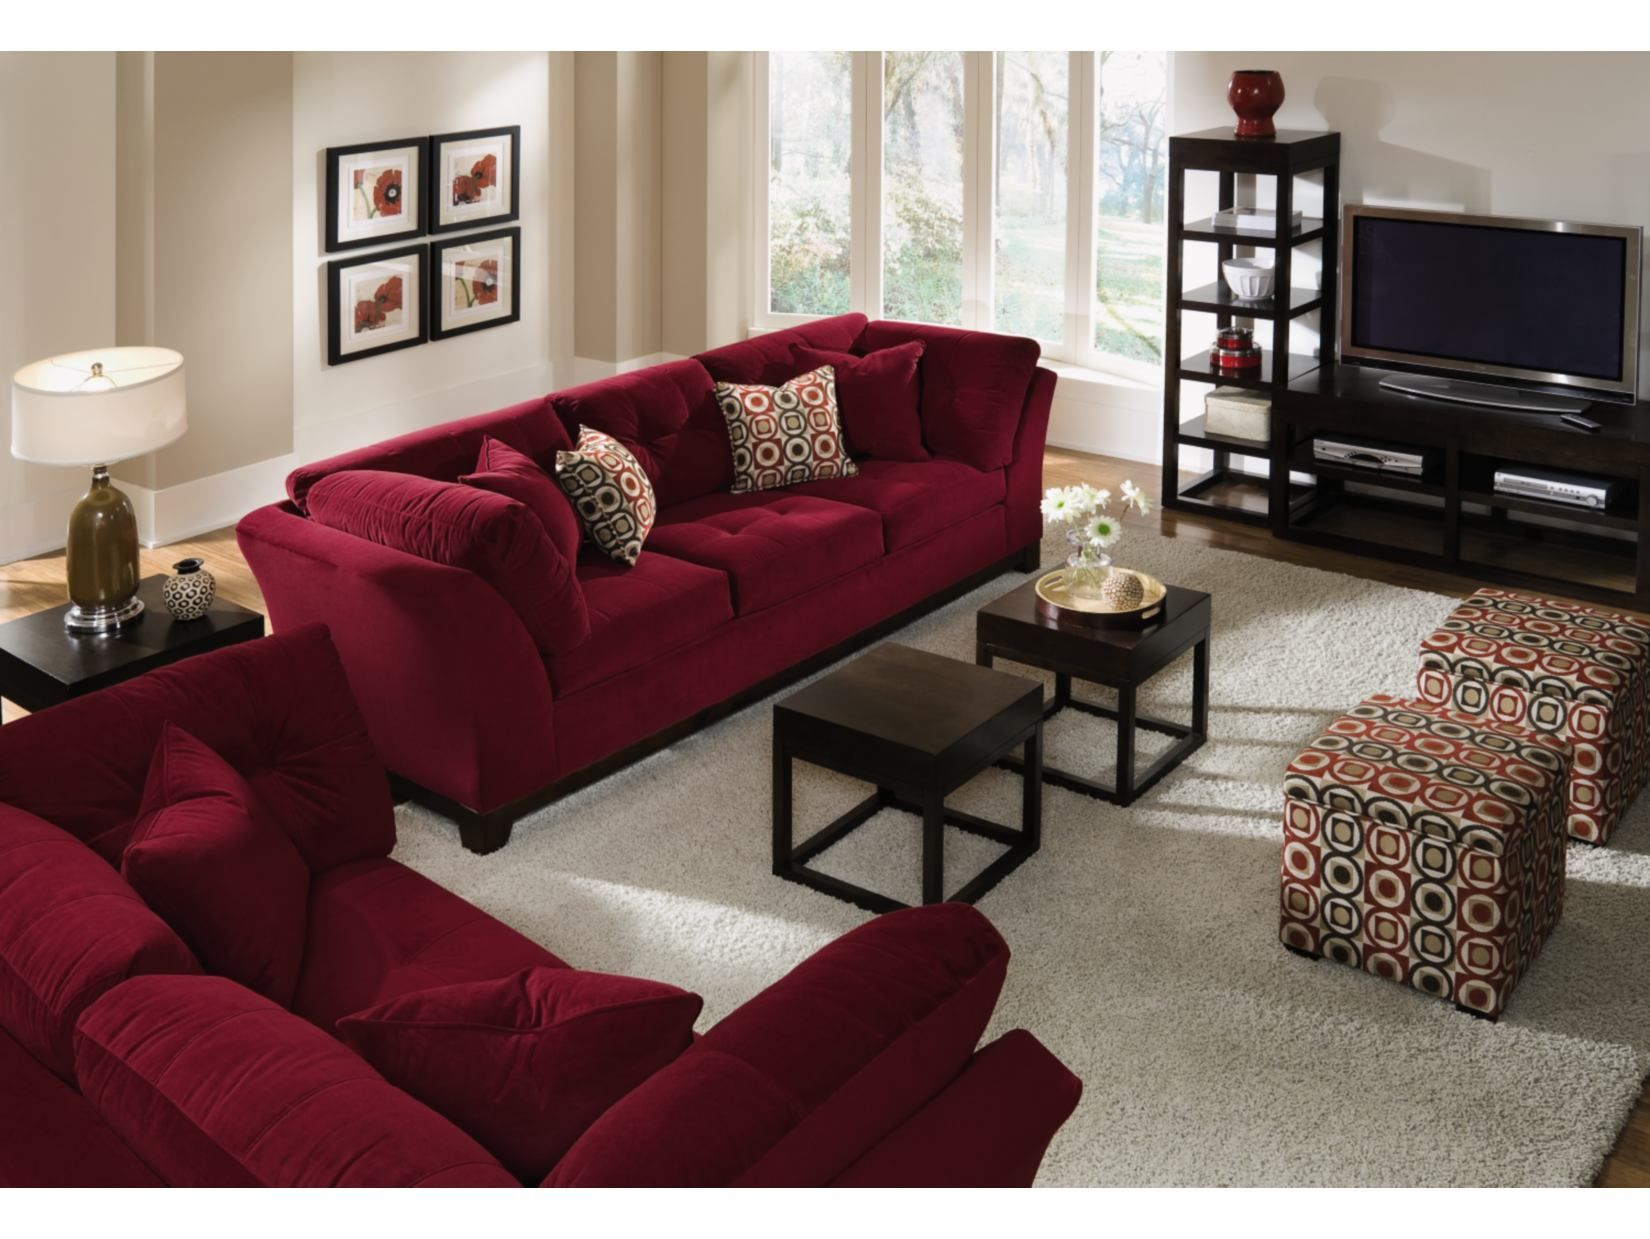 Solace Poppy Sofa Value City Furniture Ms Kirby 39 S Place Pinterest City Furniture